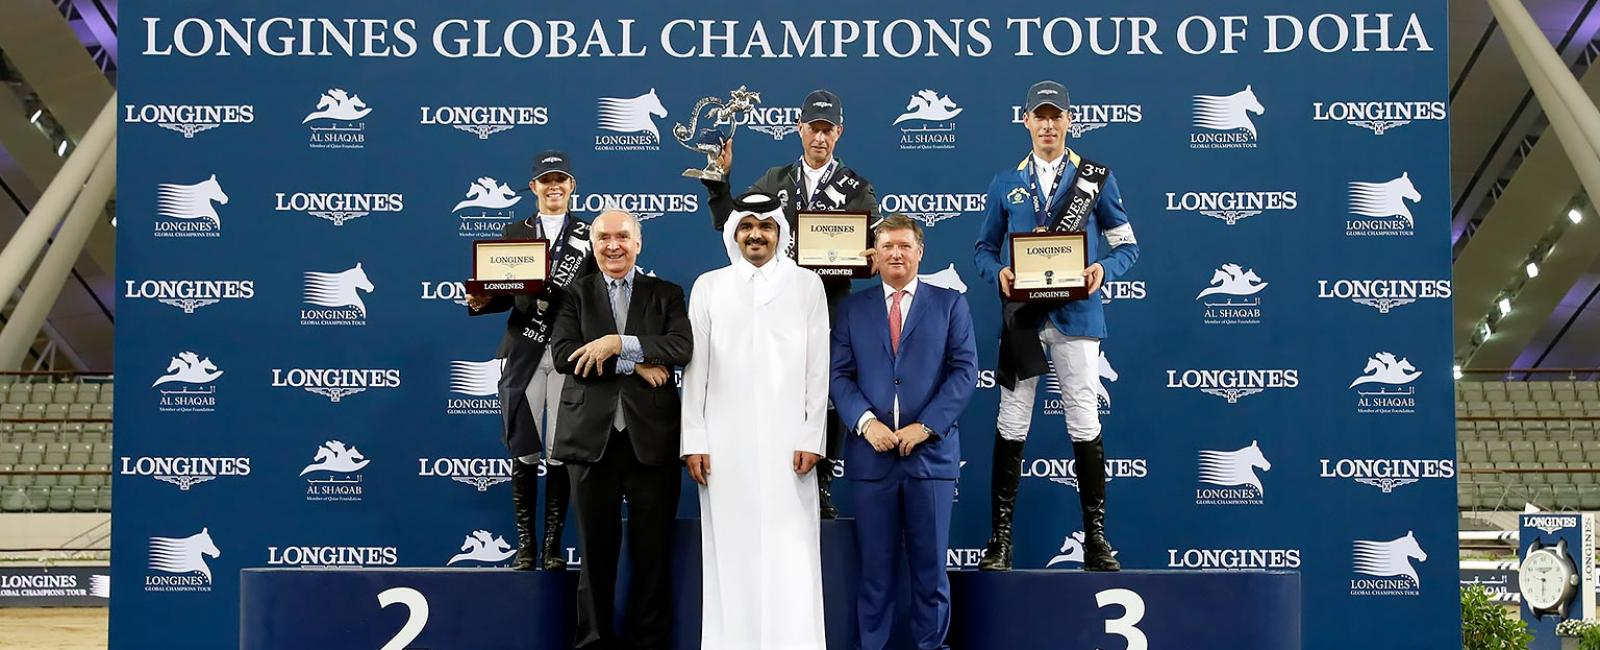 Longines Global Champions Tour Doha - Final Event;Jumping;2016